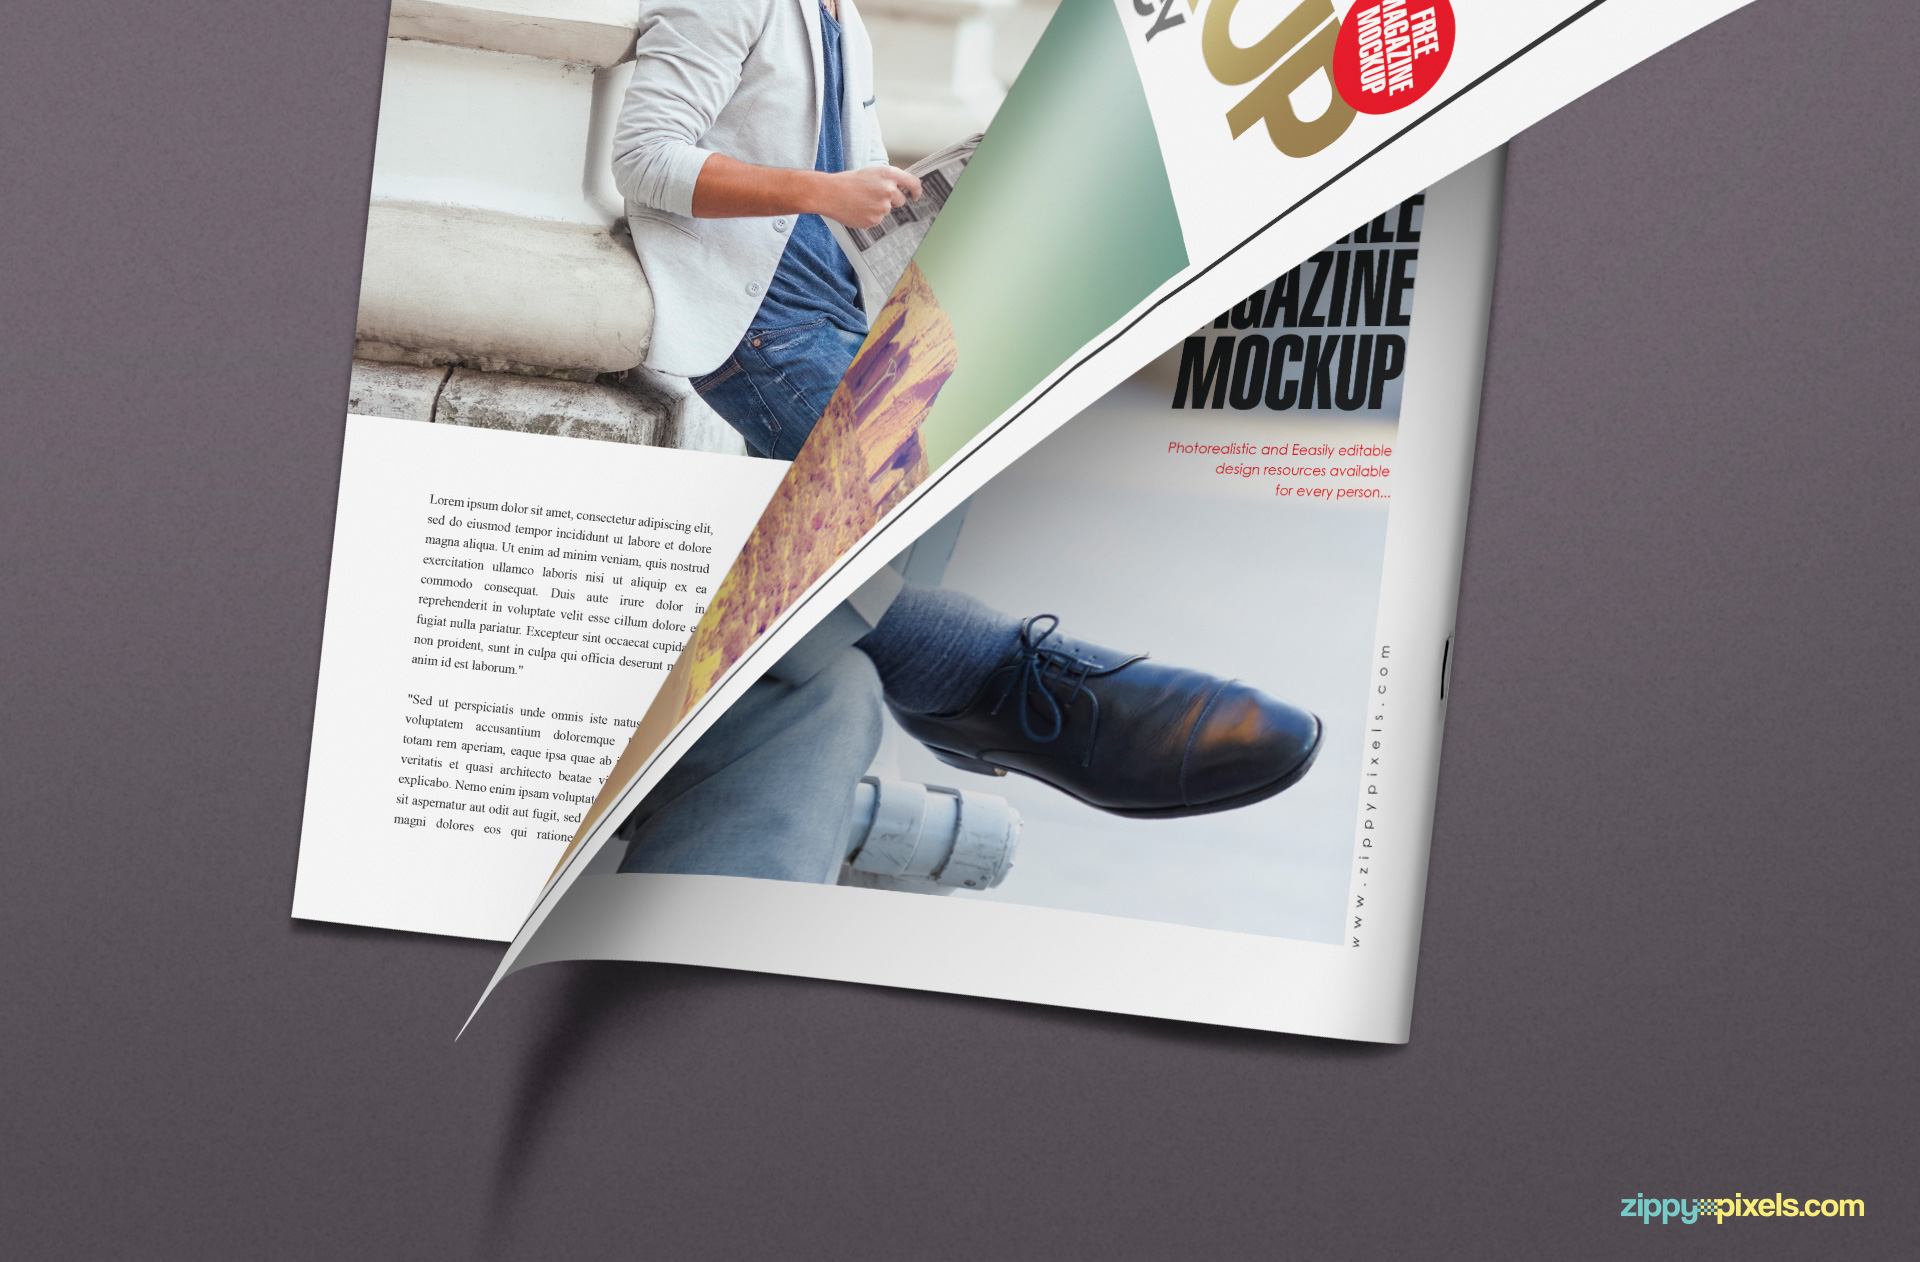 Half turned the page of the magazine mockup PSD free.